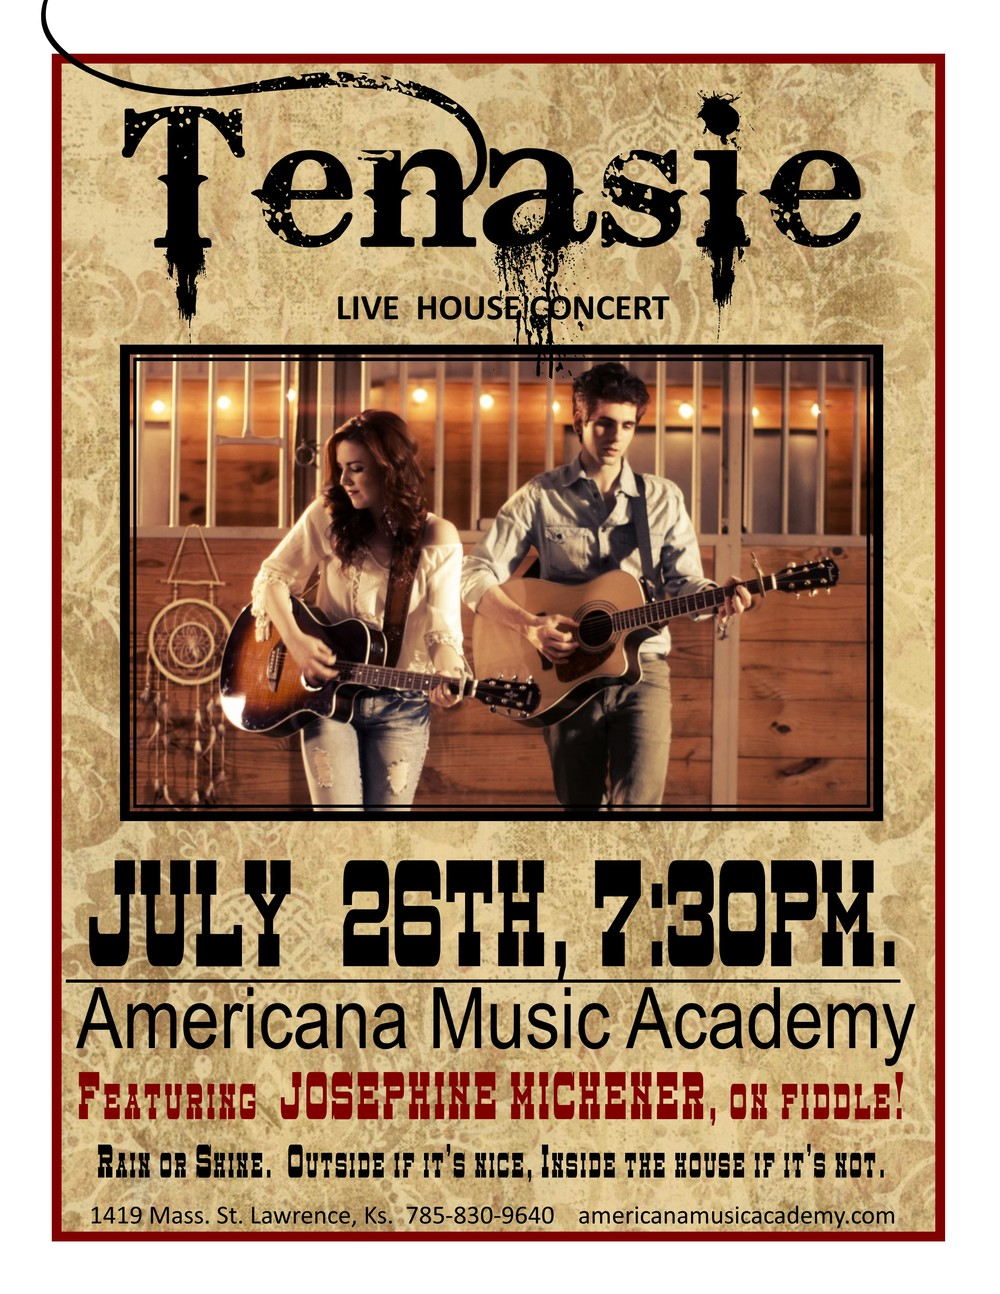 Join us for a new twist on country music with Tenasie, featuring Josephine Michener on Fiddle!  Our old friend Josephine is returning to Lawrence with her current band, so please support live music by coming to hear watch she's up to along with her band Tenasie.